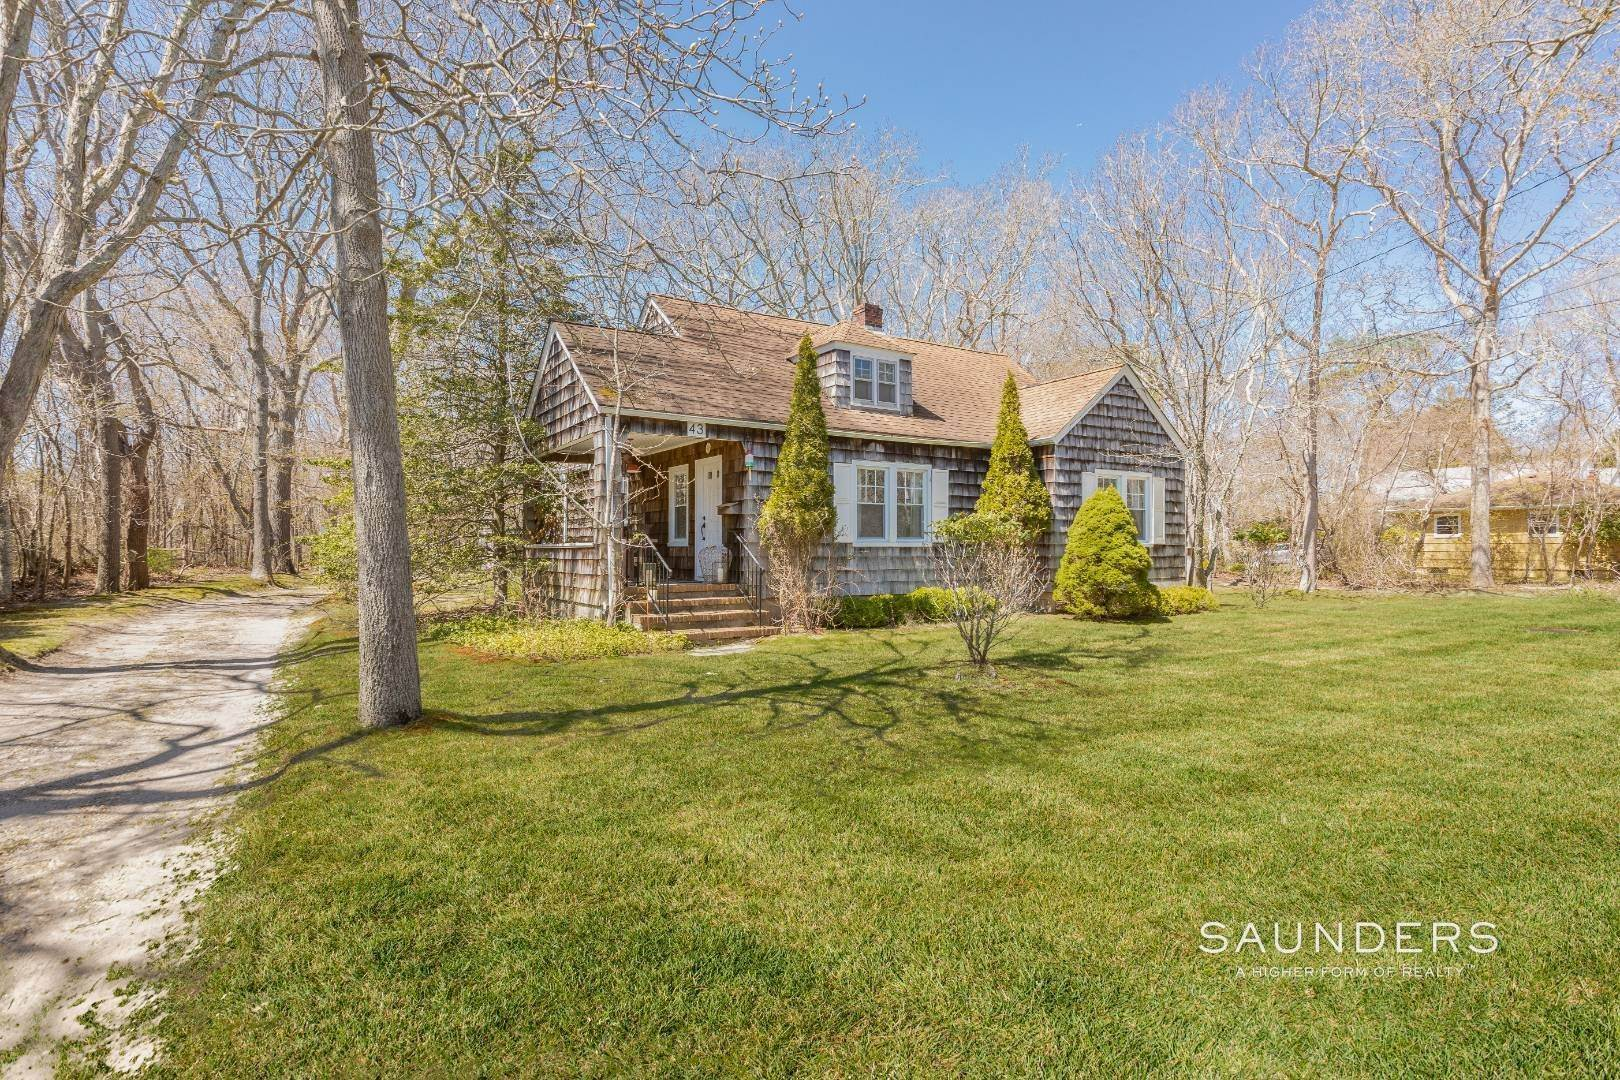 2. Single Family Homes for Sale at East Hampton Cottage On 1.17 Acres 43 Miller Lane West, East Hampton, East Hampton Town, NY 11937